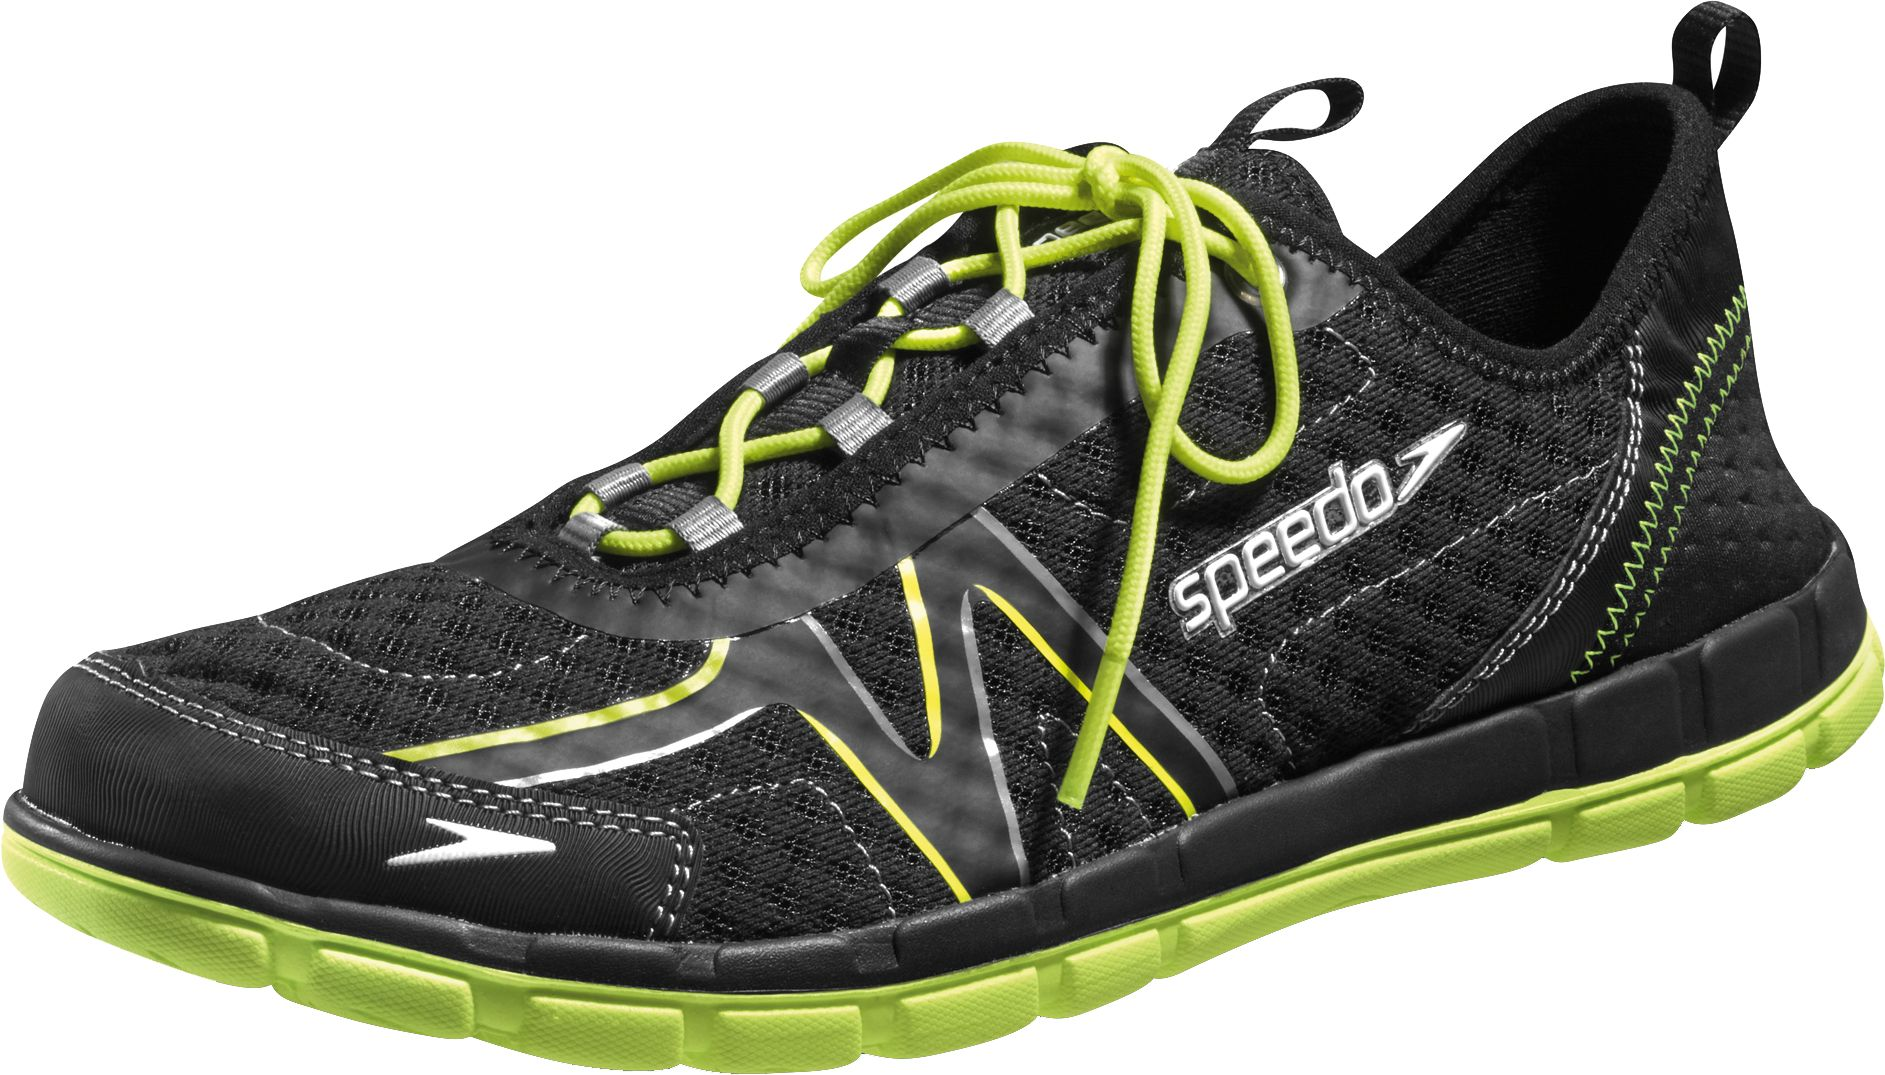 c4327938af89 Speedo Mens Upswell Water Shoes DICKS Sporting Goods hot sale 2017 ...